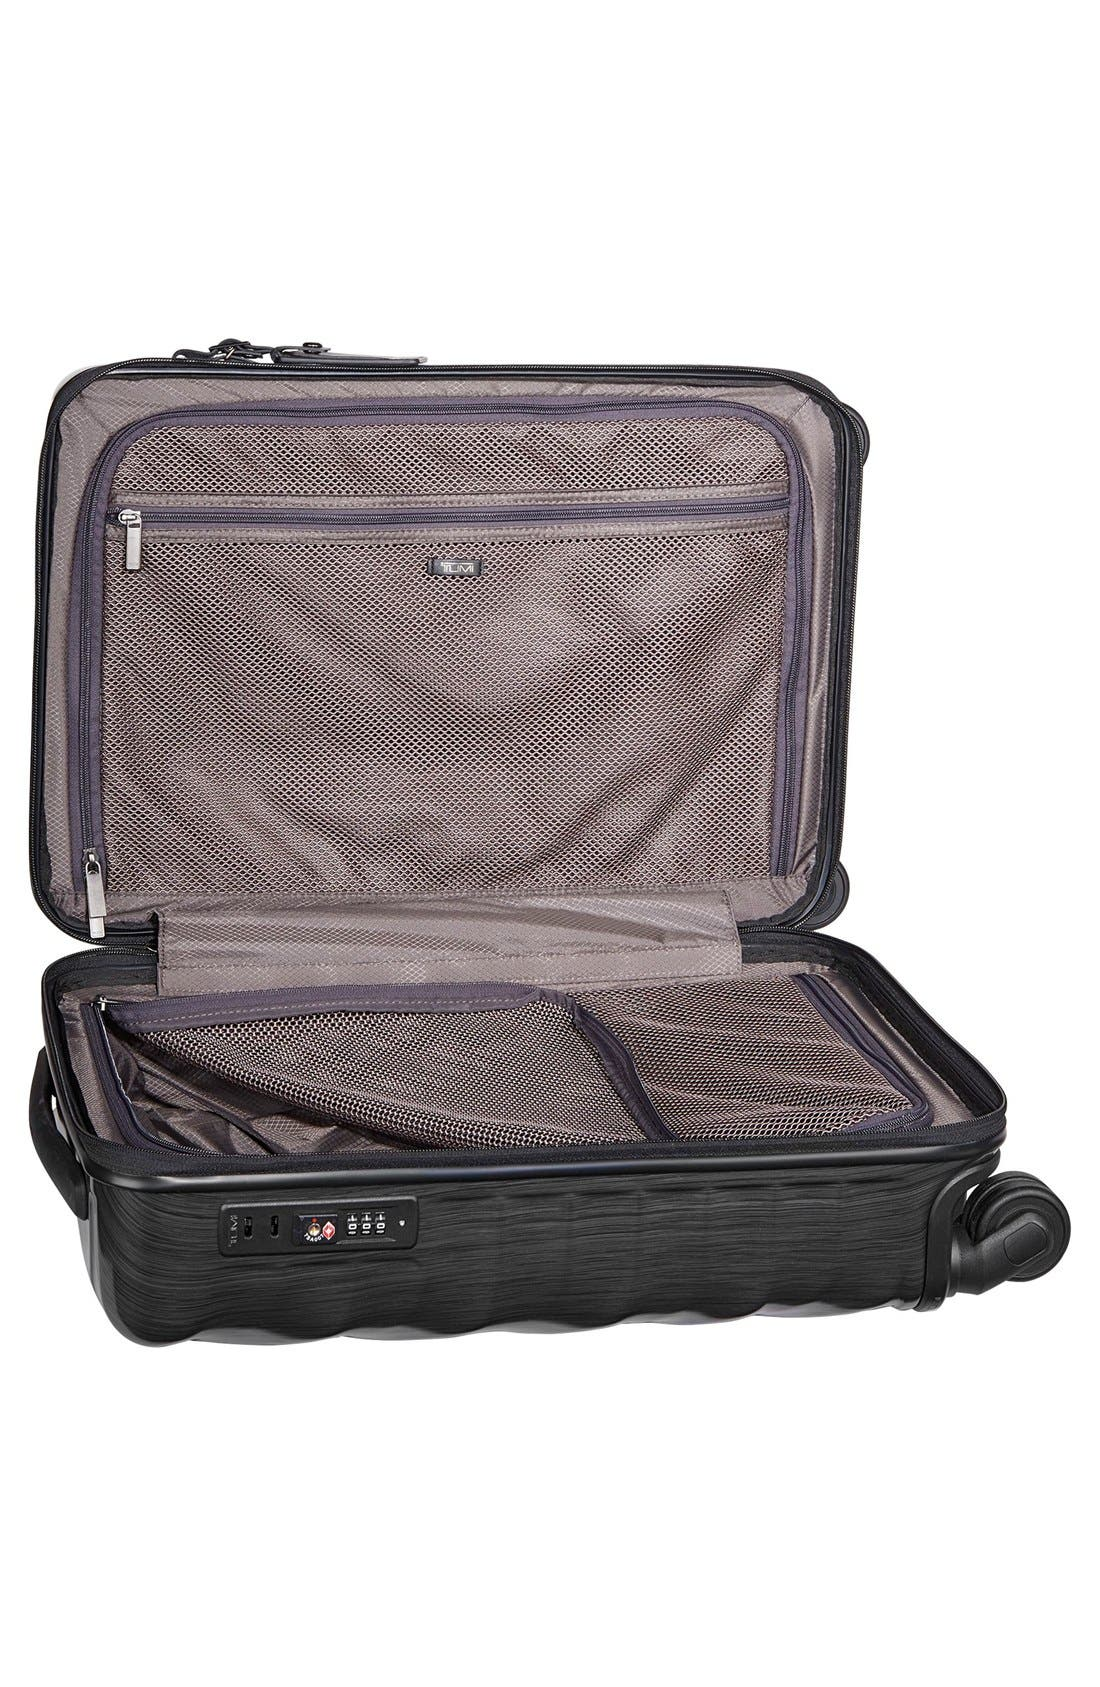 19 Degree 22 Inch Continental Wheeled Carry-On,                             Alternate thumbnail 5, color,                             001